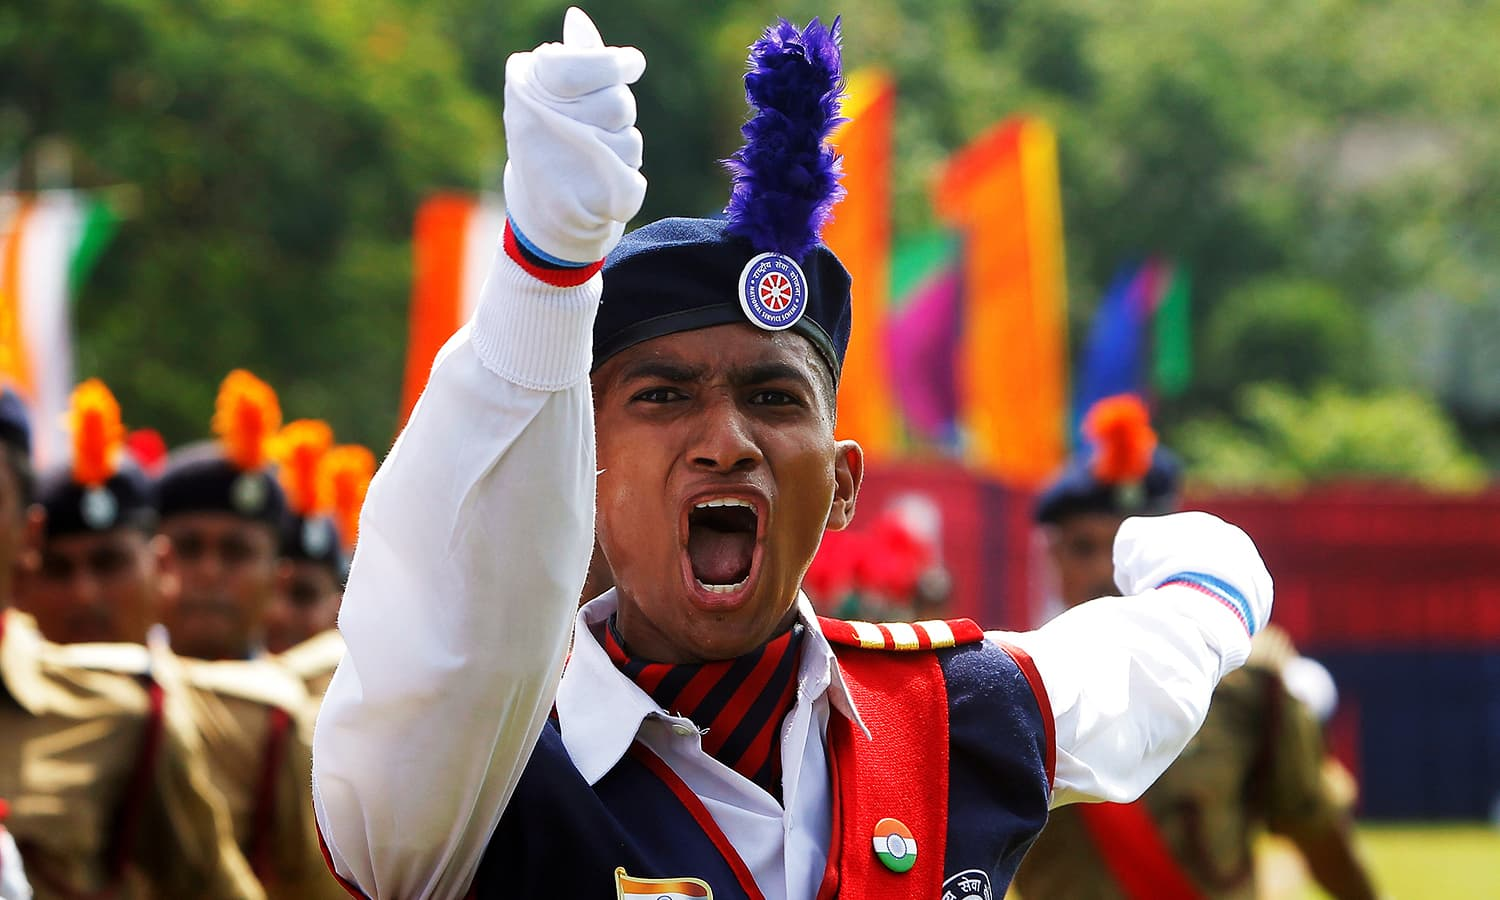 A cadet from the National Cadet Corps (NCC) shouts commands at a parade during India's Independence Day celebrations in Agartala, India, August 15, 2016. ─ Reuters